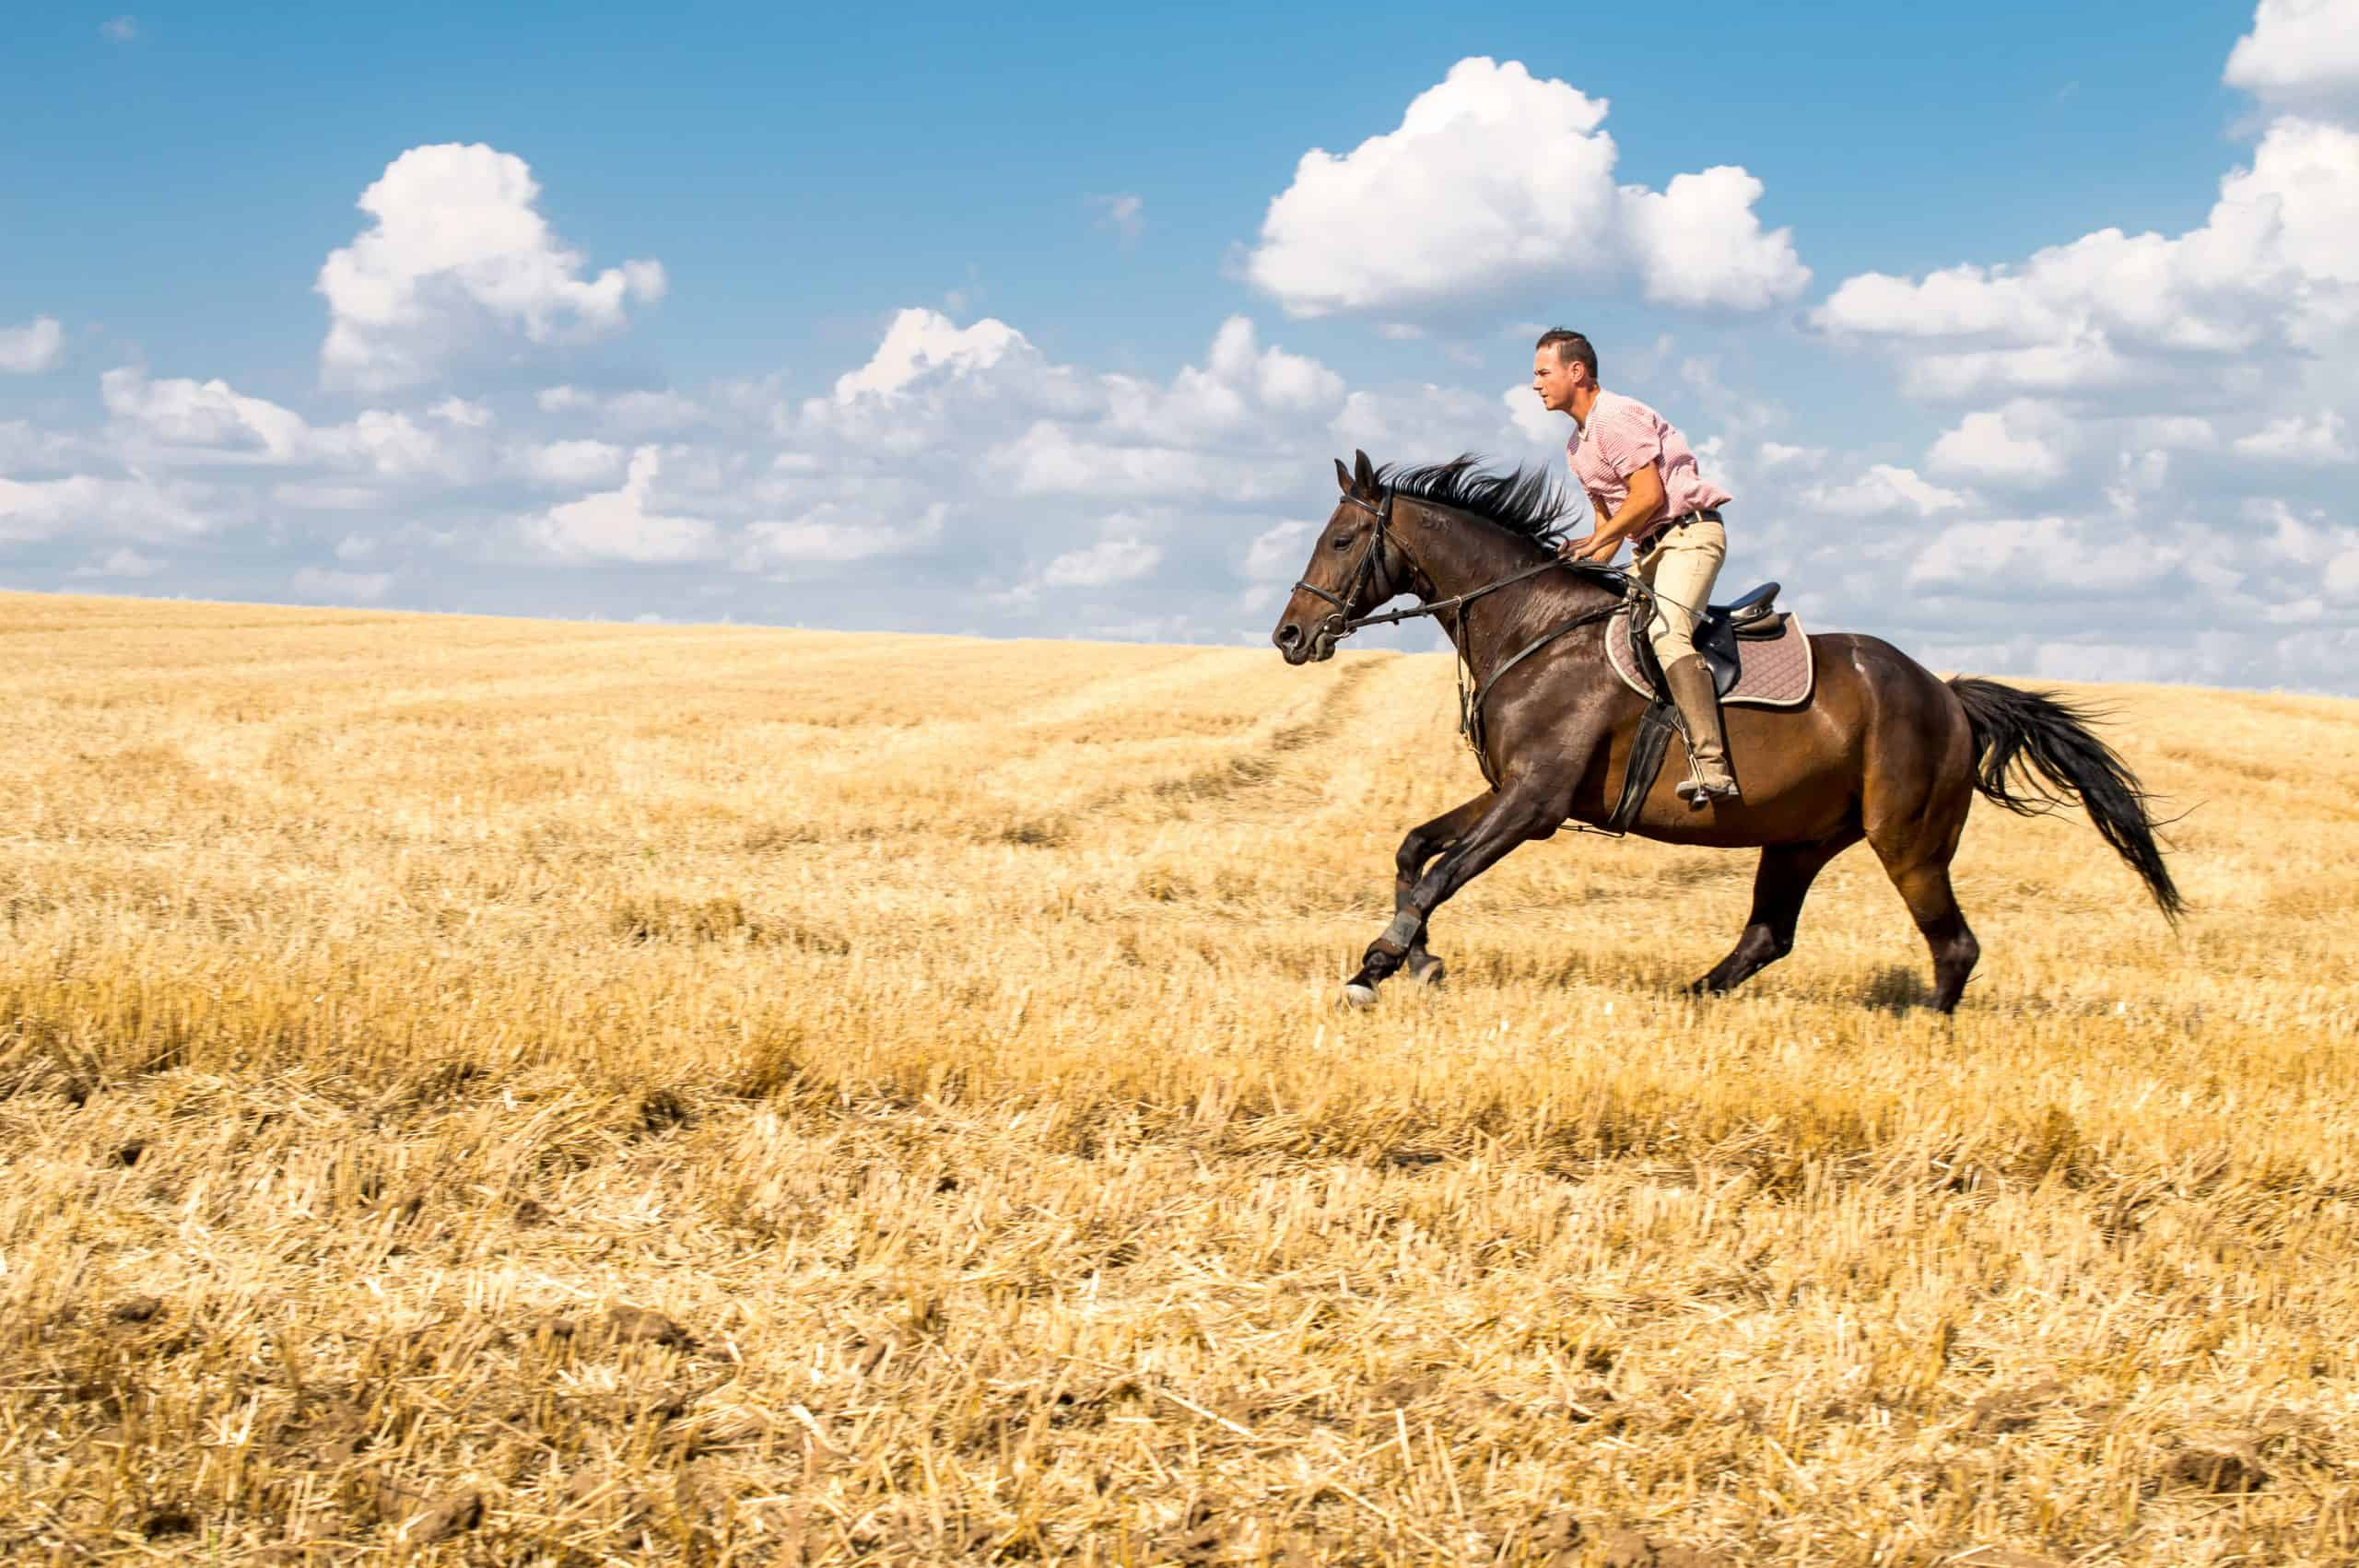 Man ride horse on field - freedom and hapiness